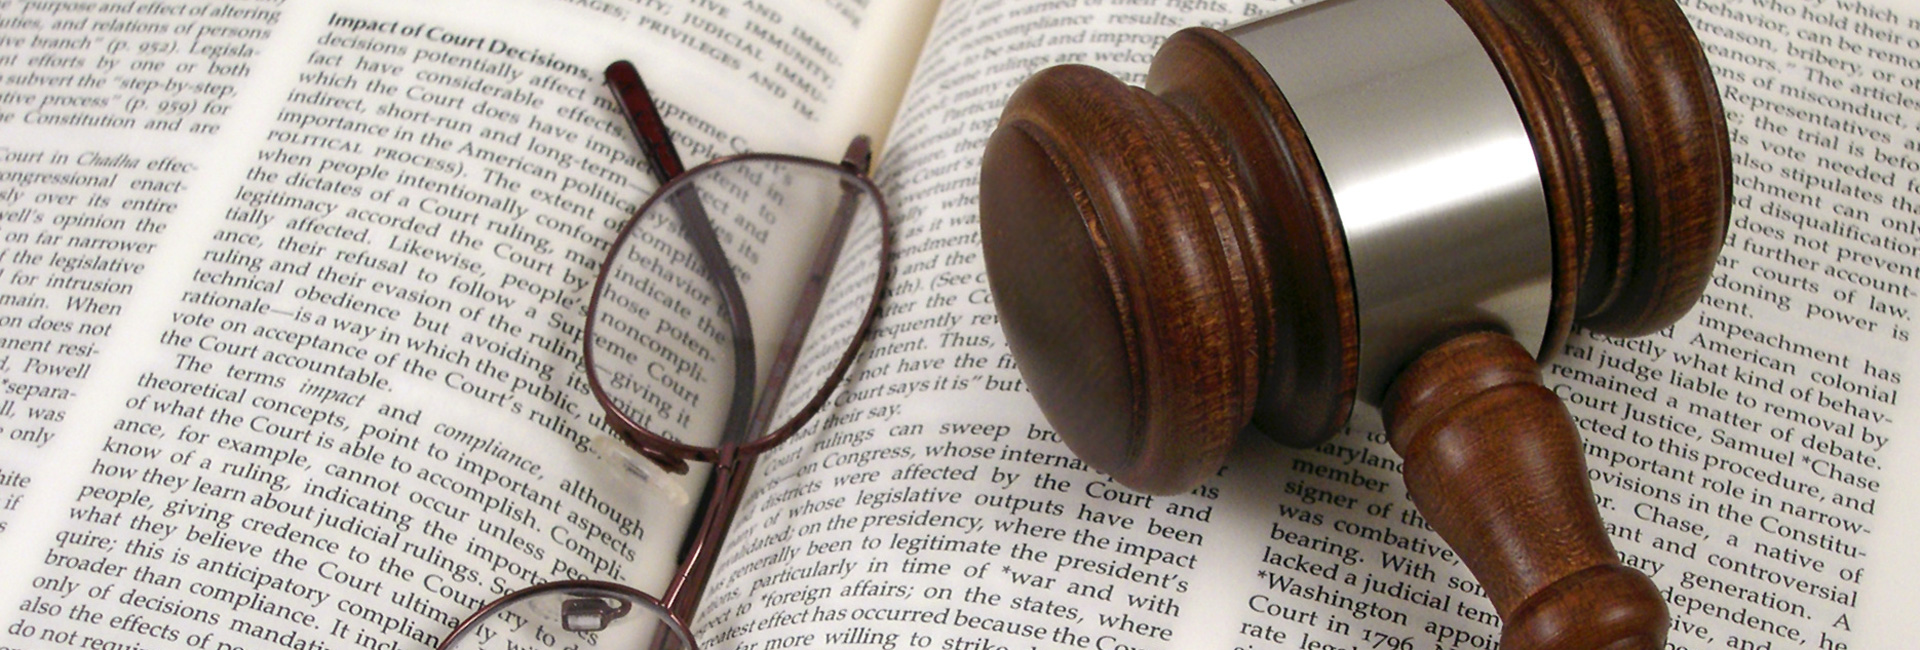 Gavel And Legal Book With Eyeglasses